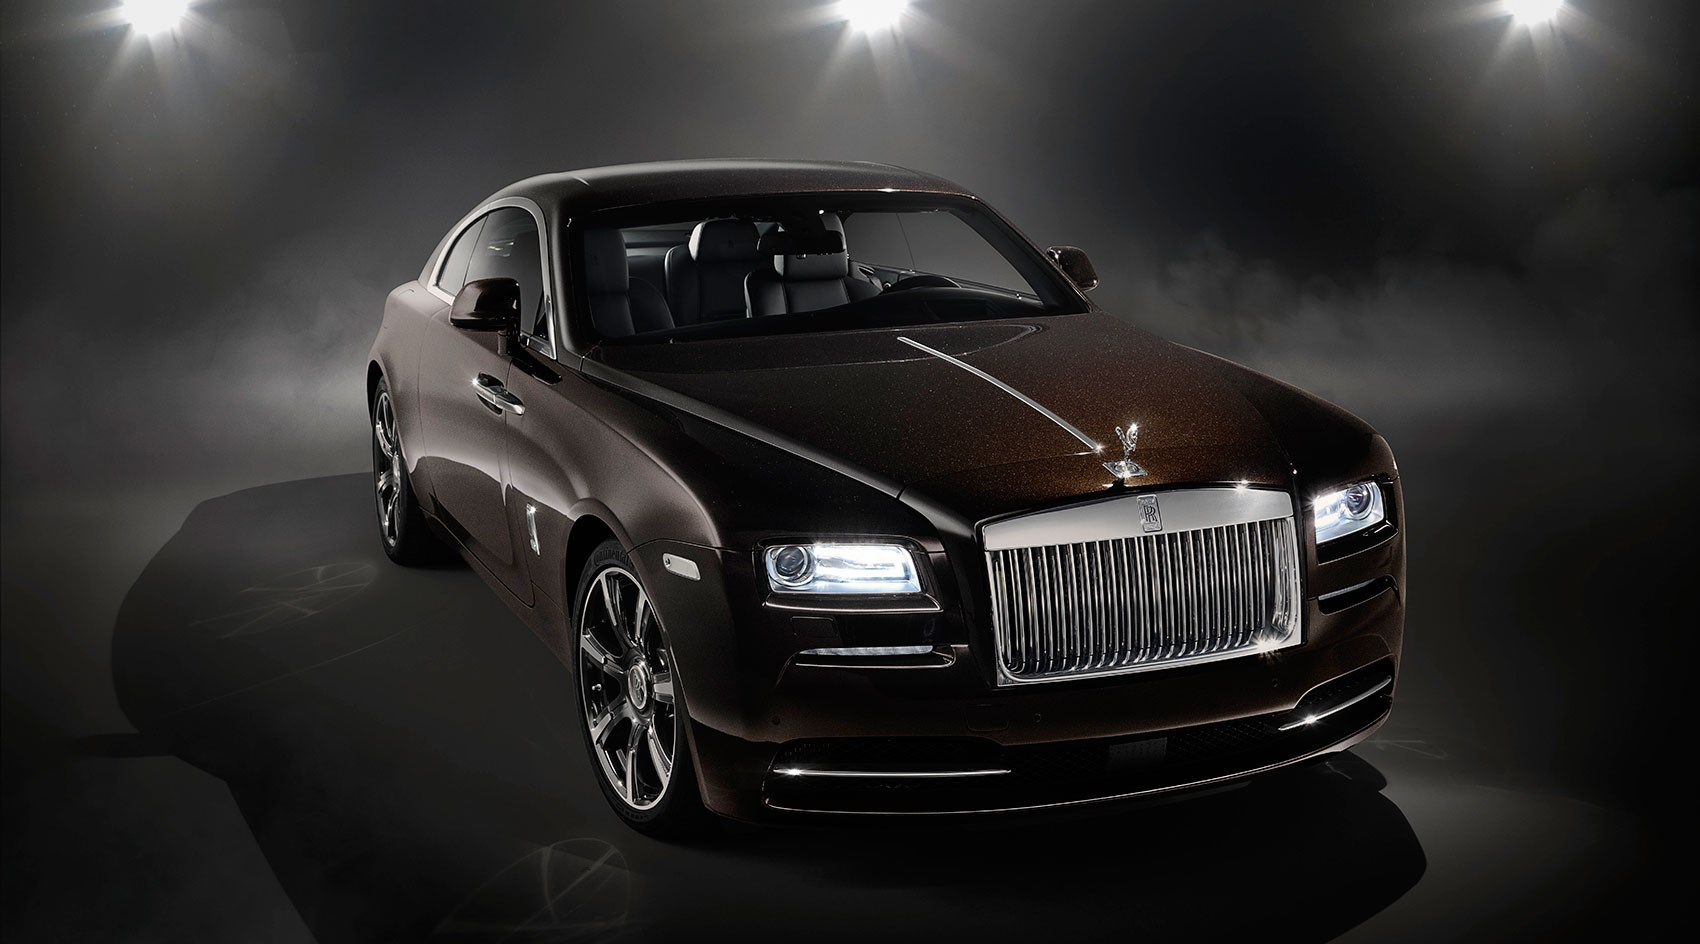 Rolls royce wraith inspired by music a concert hall on - Keith moon rolls royce swimming pool ...